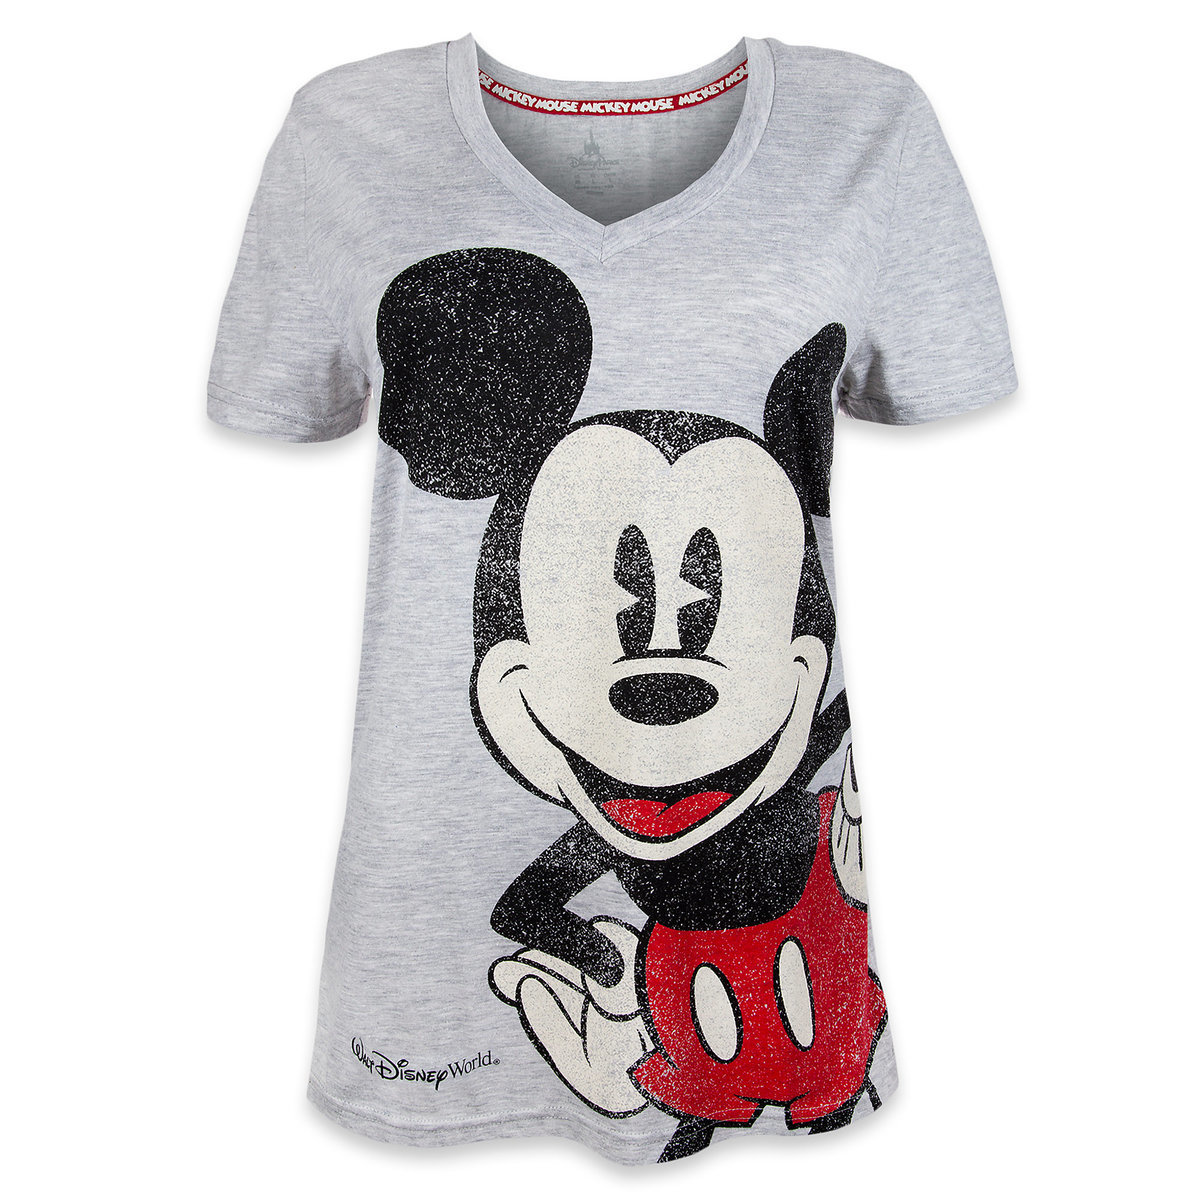 c1aa82a8 Add to My Lists. Disney Women's Shirt - Timeless Mickey ...